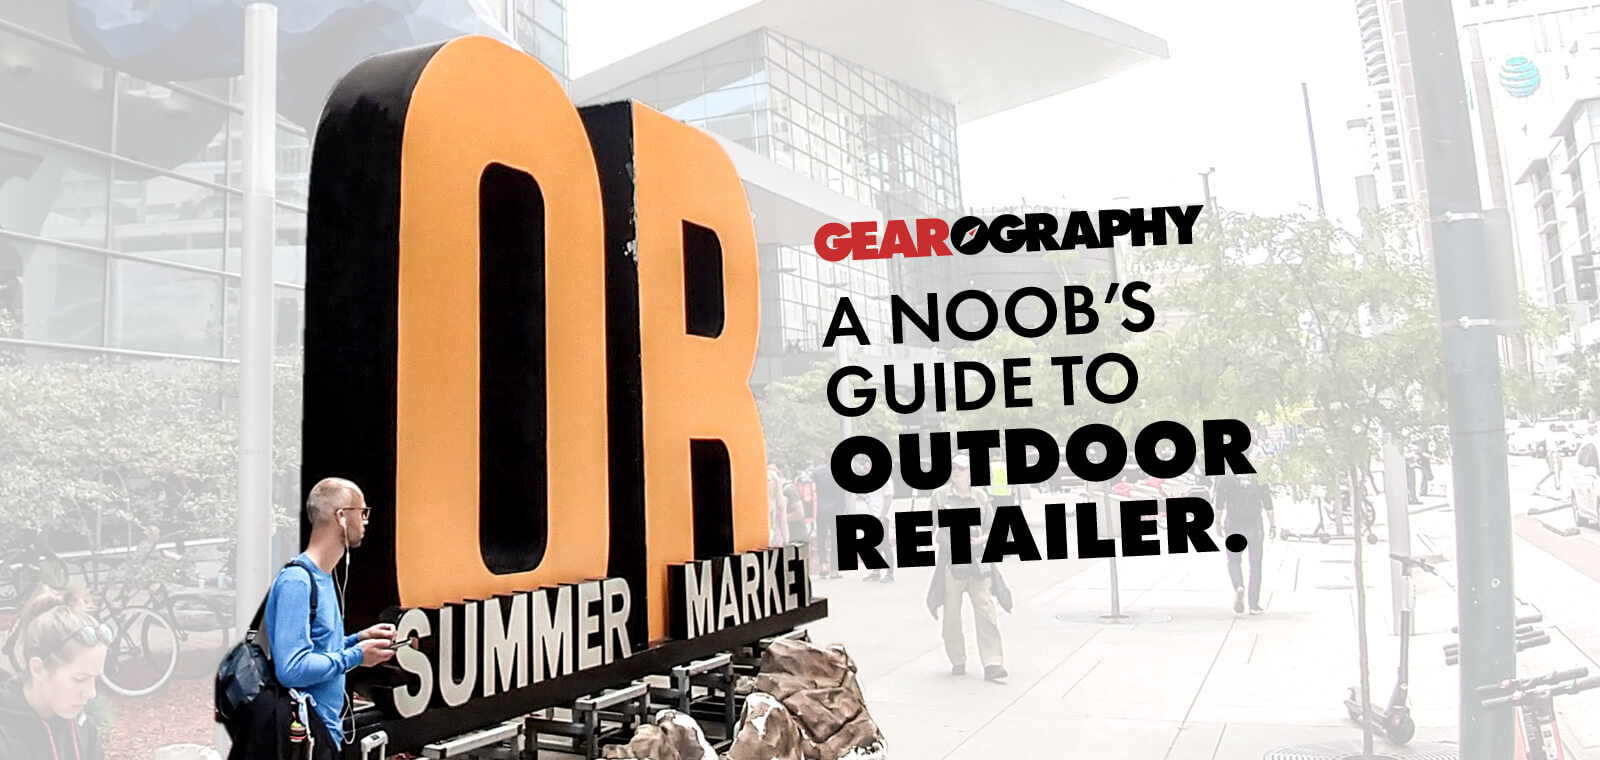 Gearography: A Noob's Guide to Outdoor Retailer